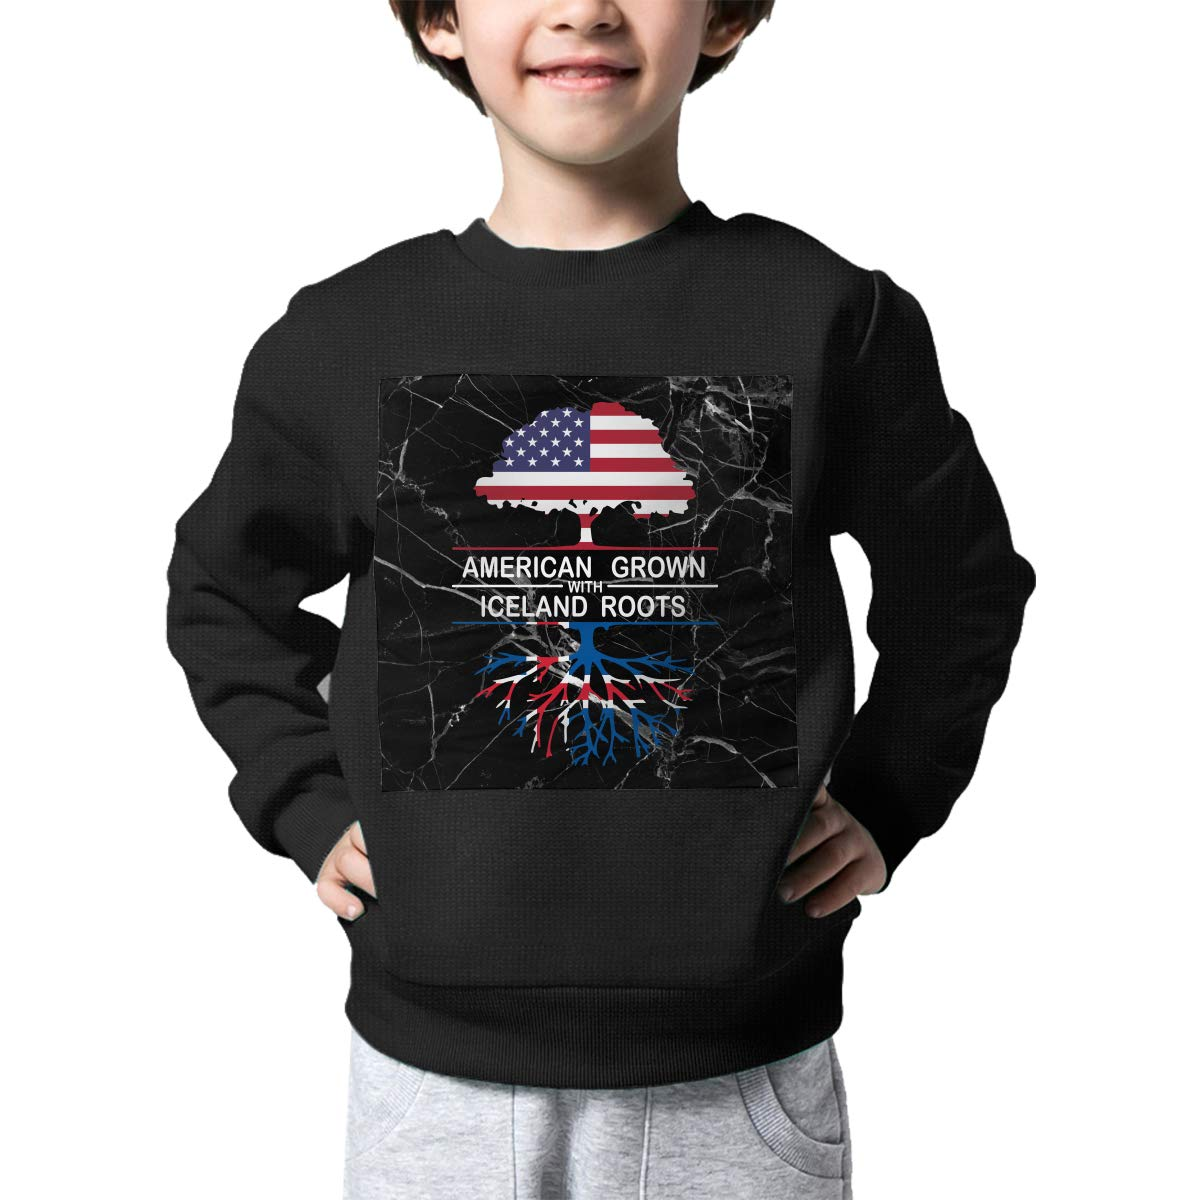 Warm/&Q90 American Grown with Iceland Roots Print Newborn Kids Crew Neck Sweater Long Sleeve Cute Knit Sweater Jumper